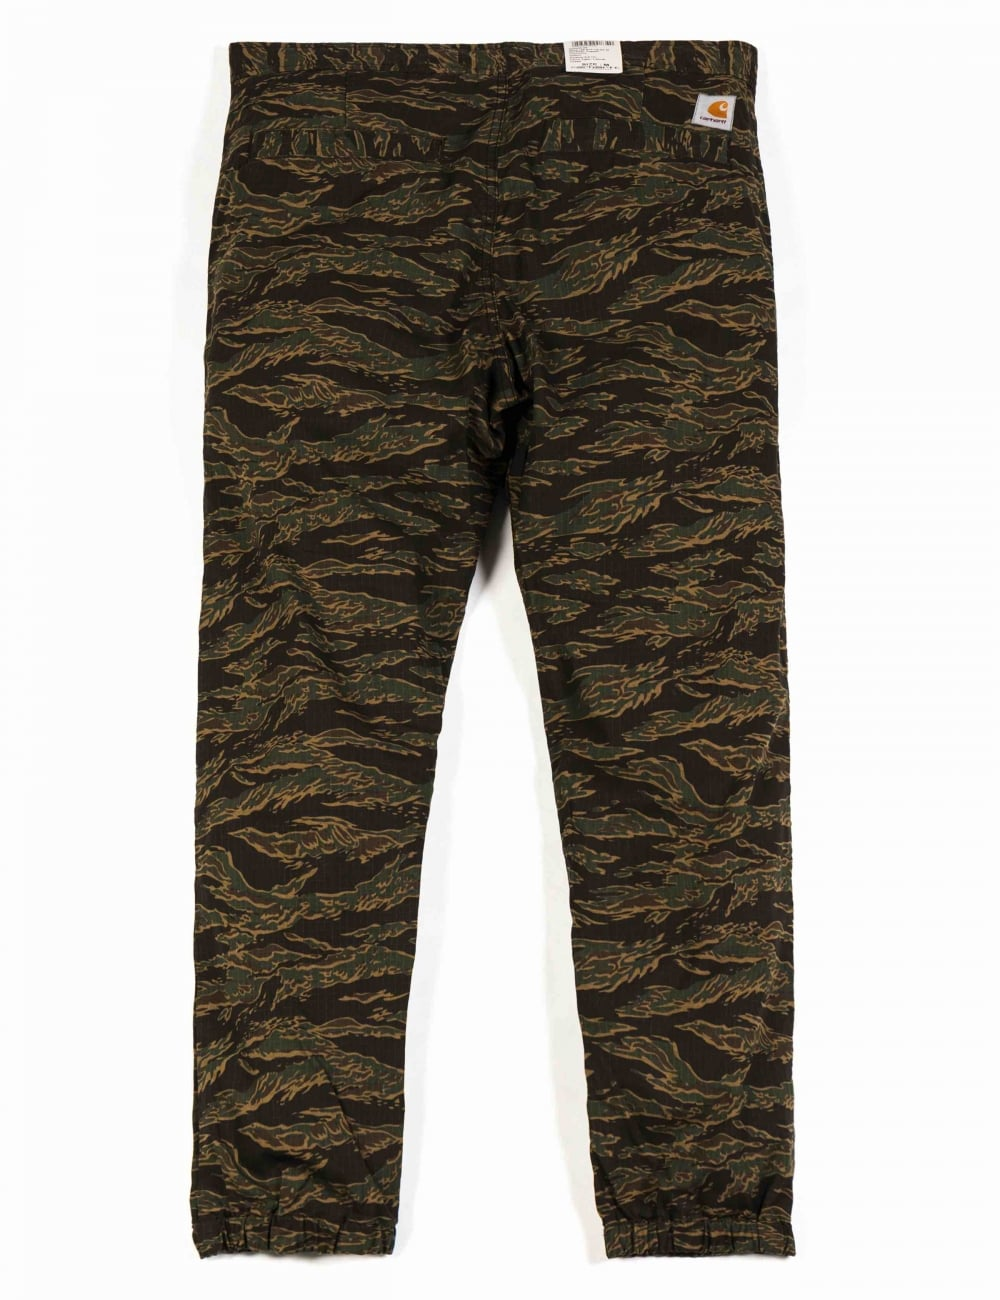 fashion styles on sale another chance Marshall Jogger Pant - Tiger Camo